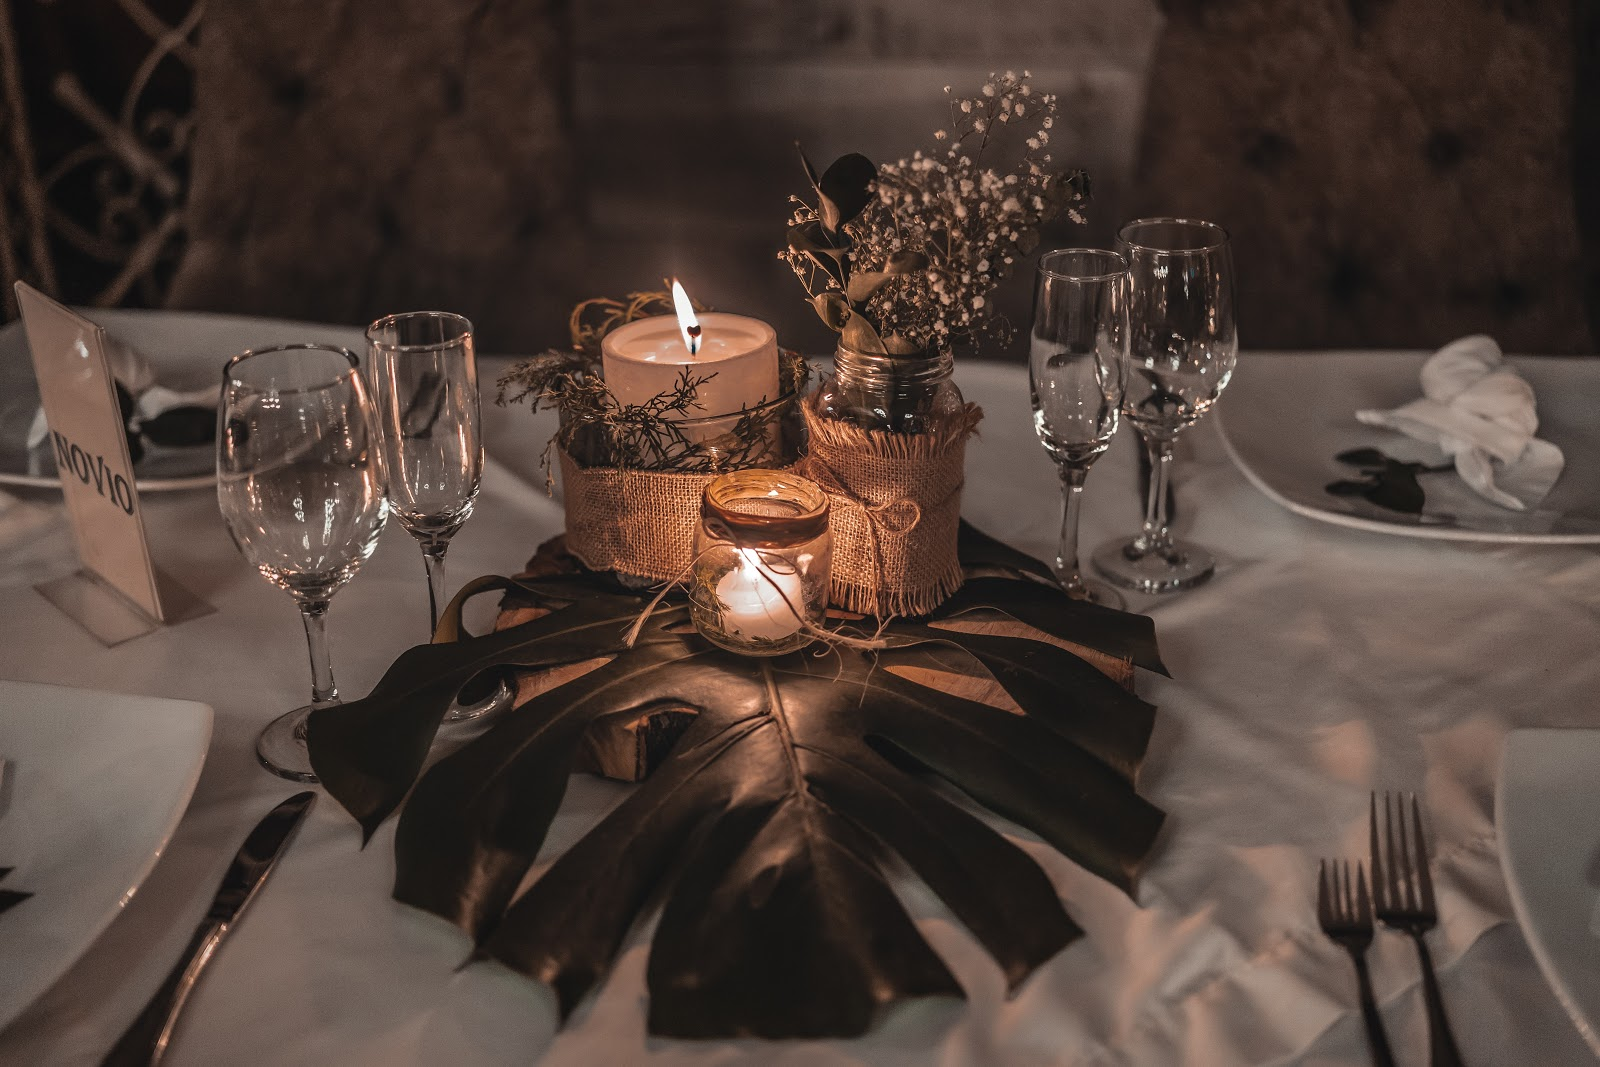 candles on top of a palm leaf as a centerpiece on a table. Wine glasses, plates, and silverware surround the centerpiece